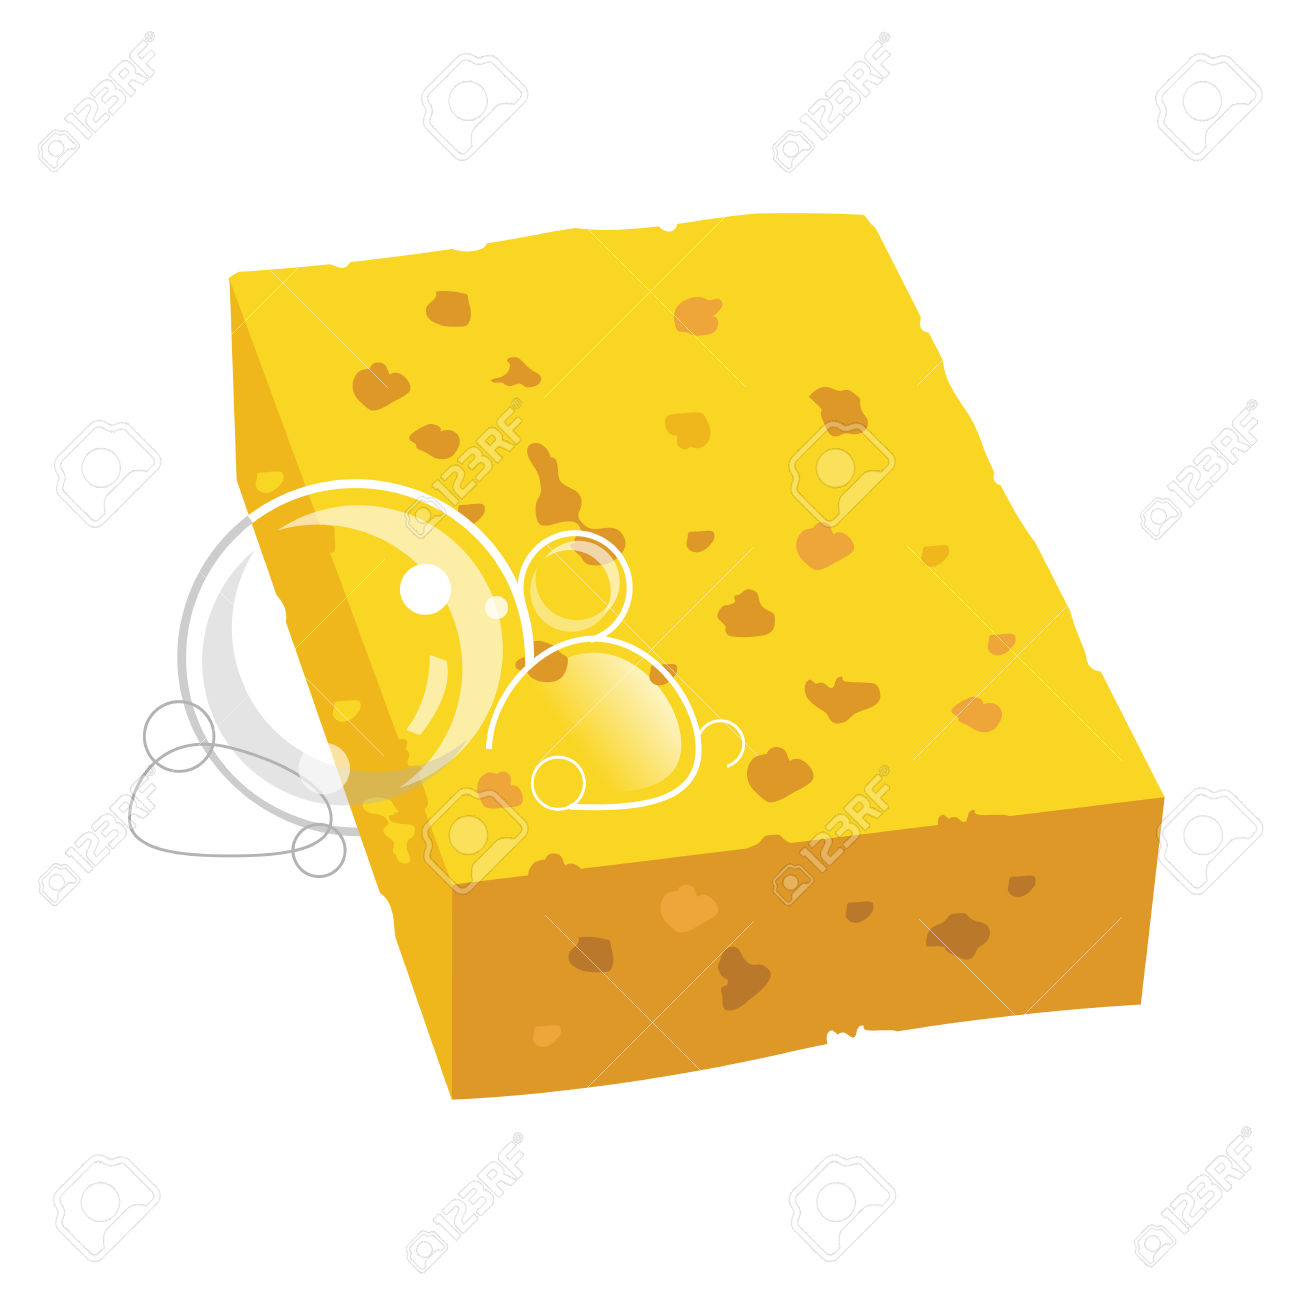 Household sponge clipart - Clipground